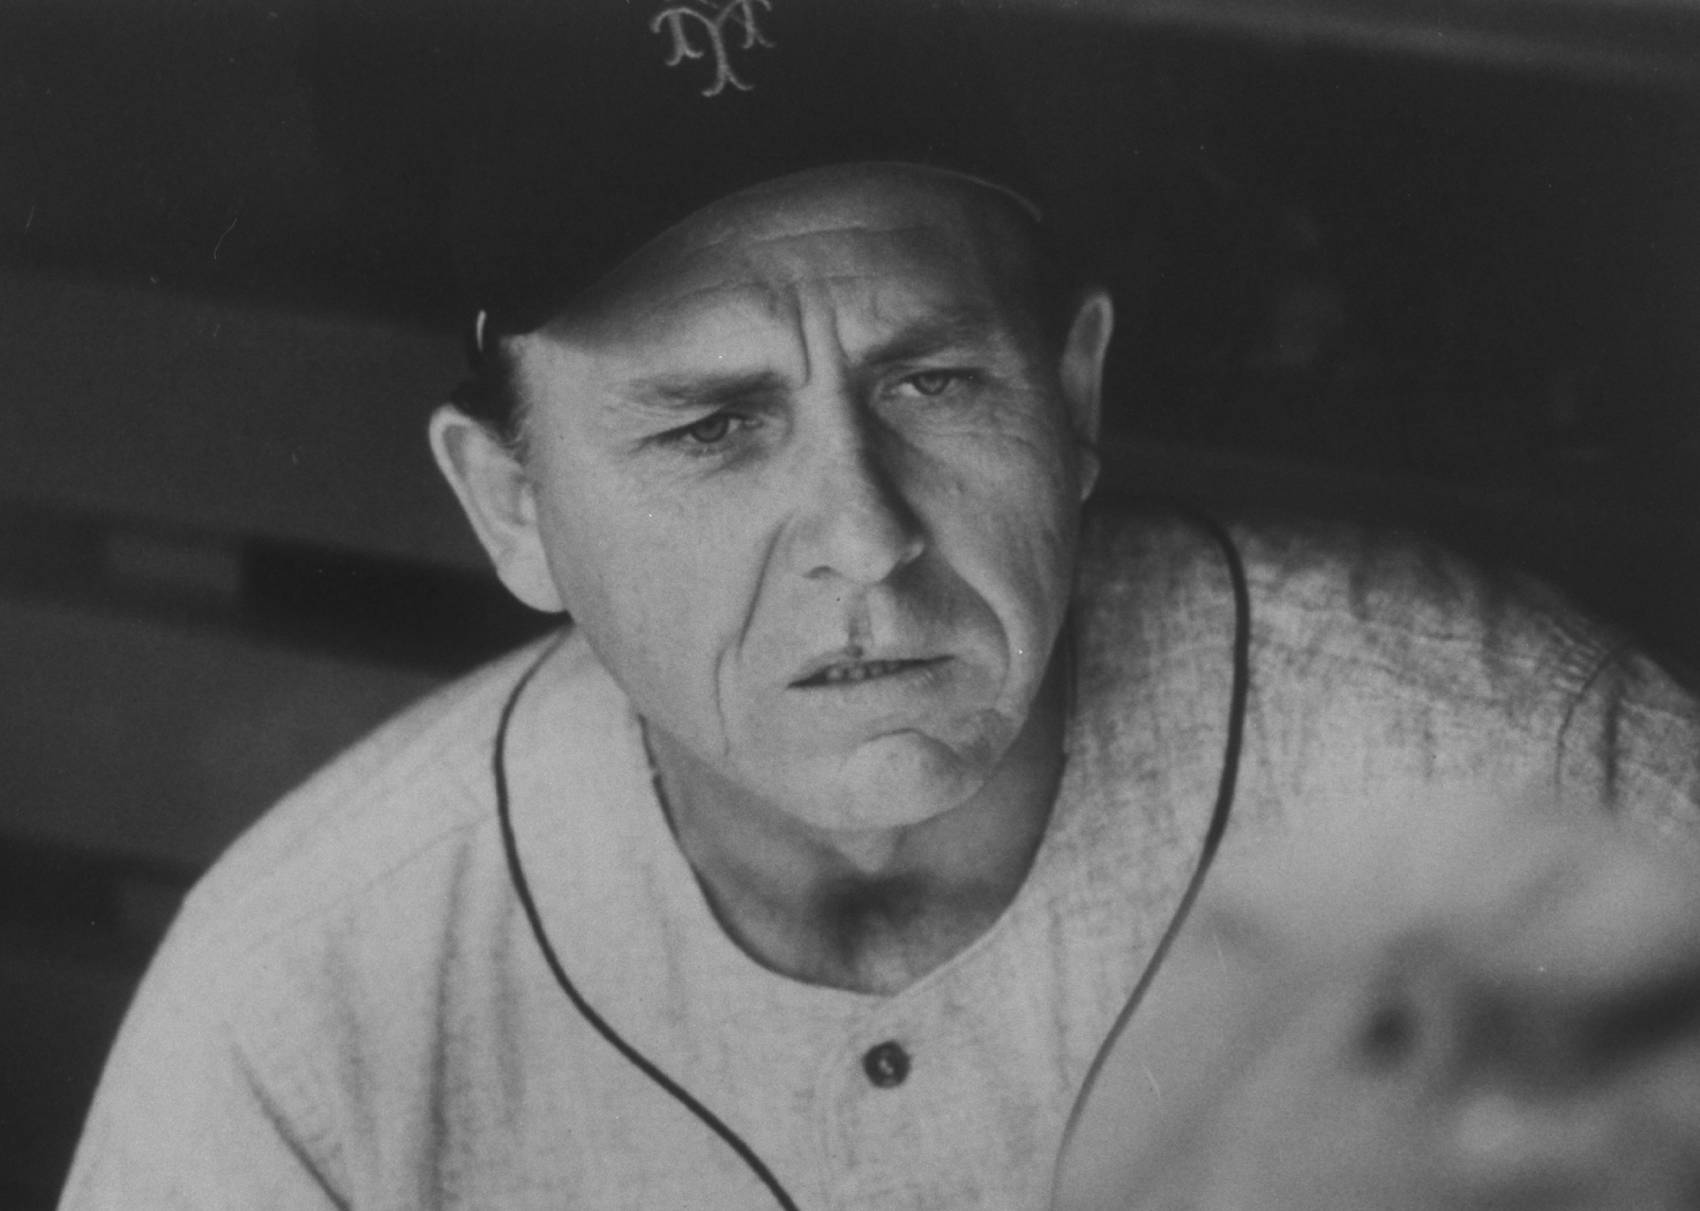 New York Mets manager Gil Hodges, a former Dodgers fan favorite, died days before the 1972 season began.